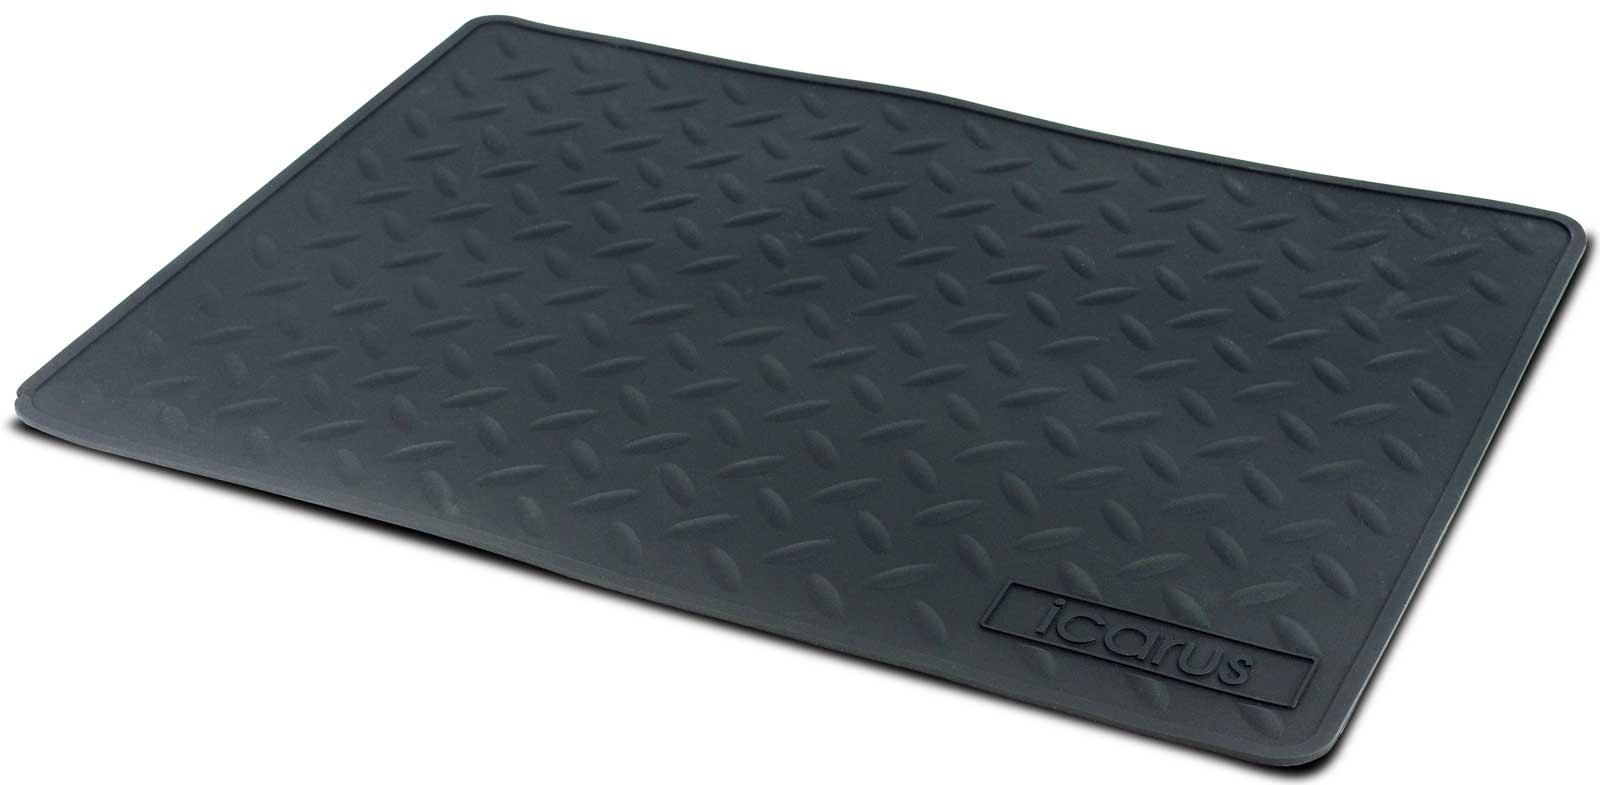 Icarus Silicone Heat Resistant Proof Station Mat